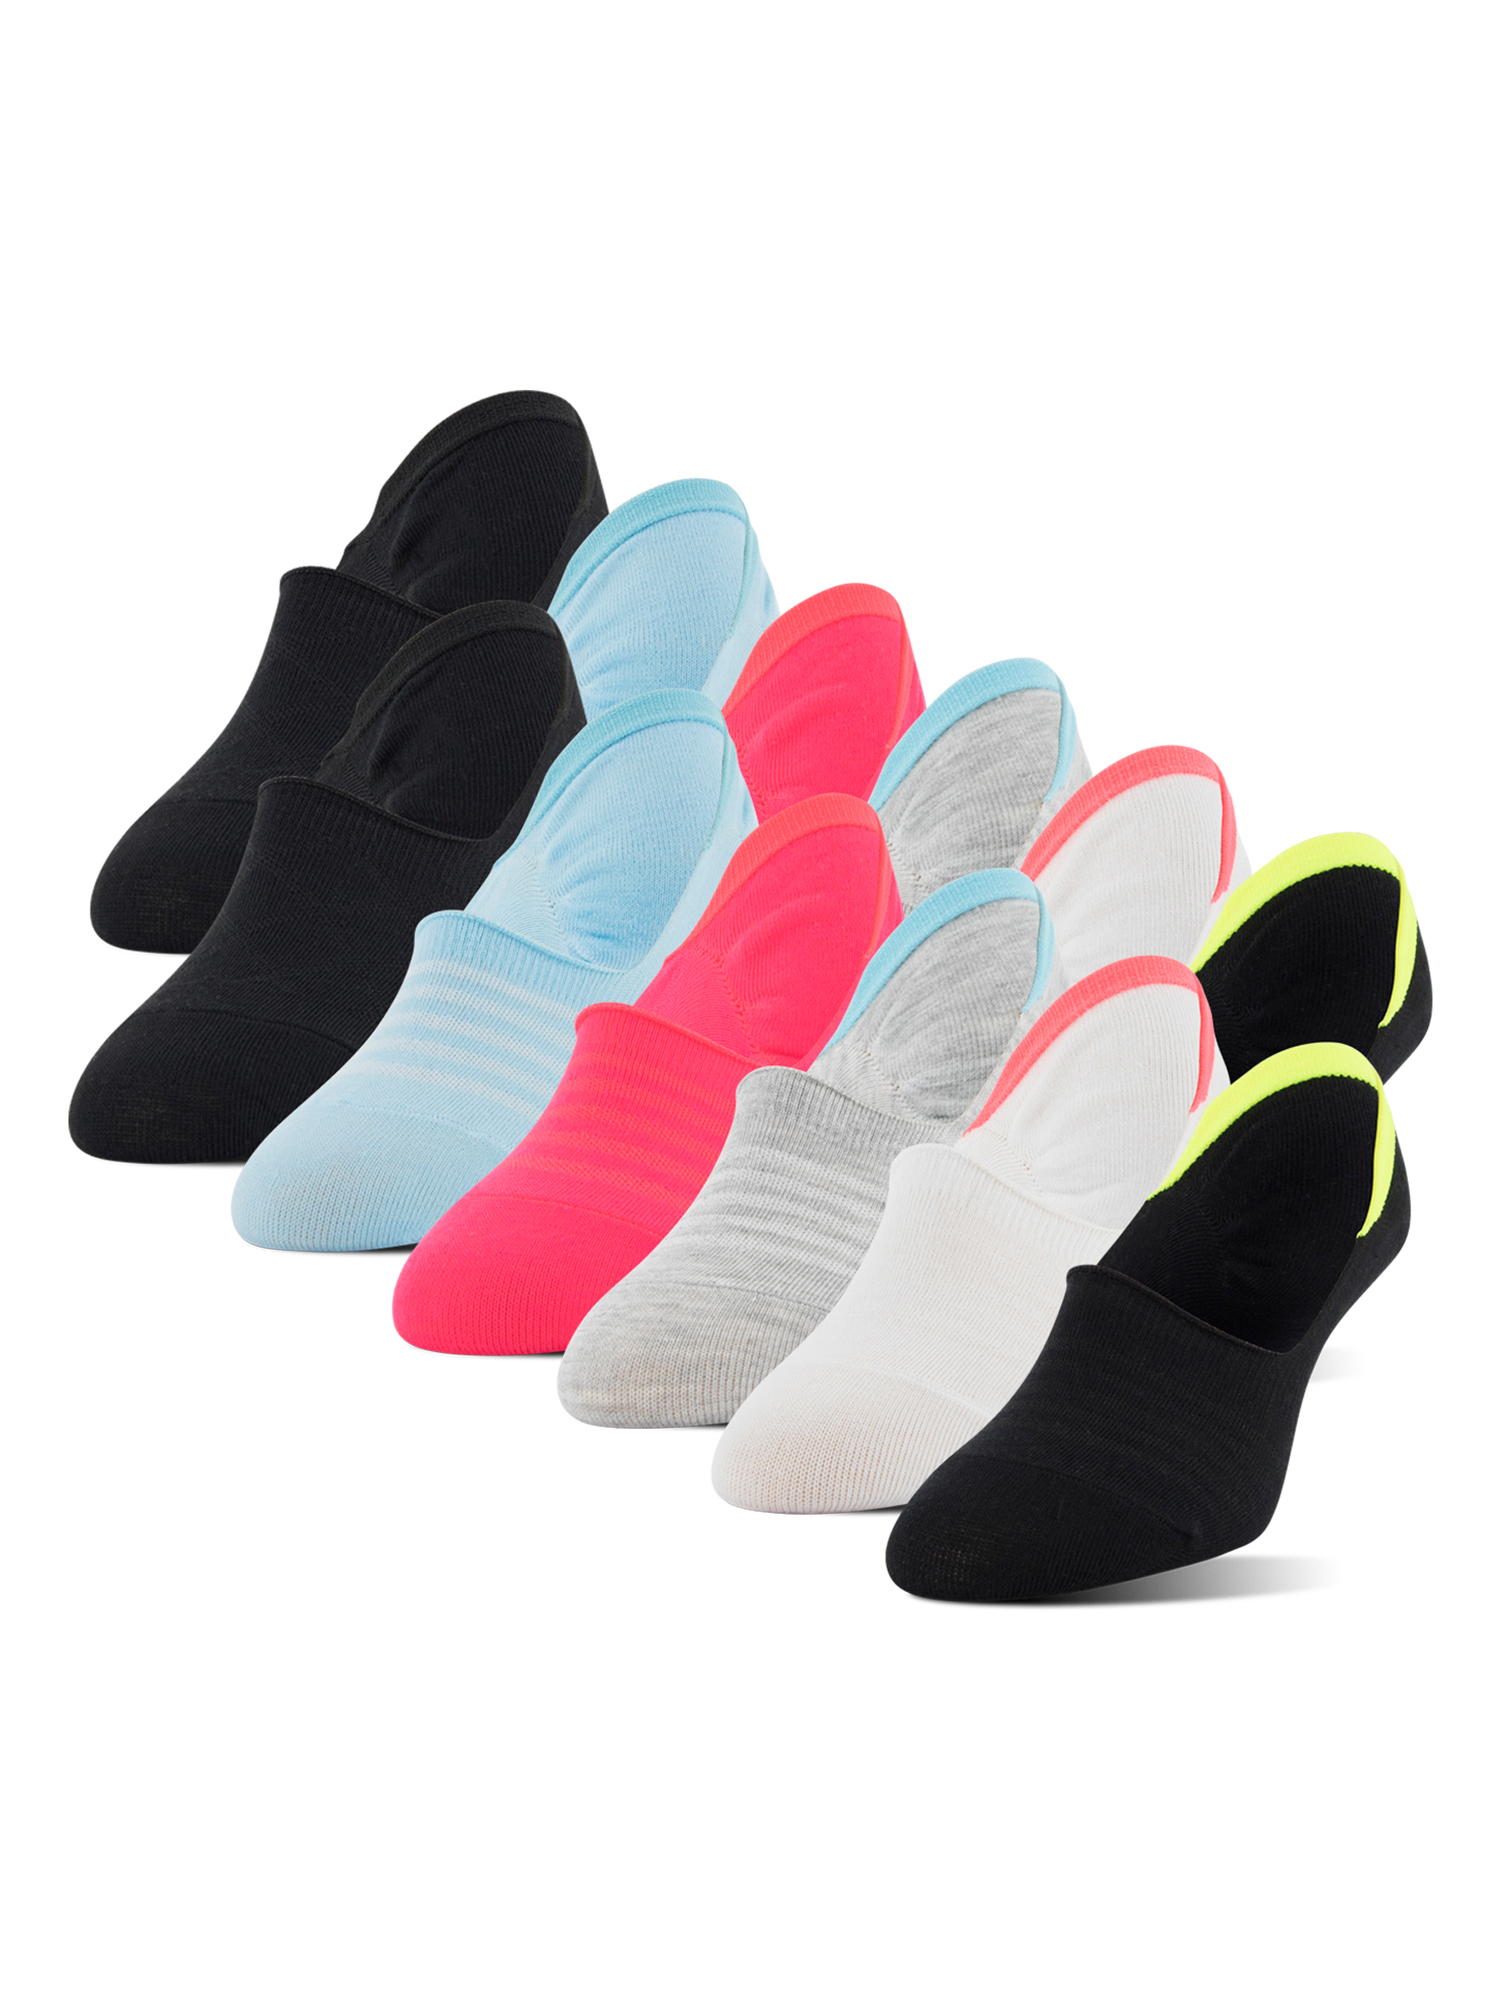 Women's Mid Sport Cut Liners with Y-heel, 12 Pairs